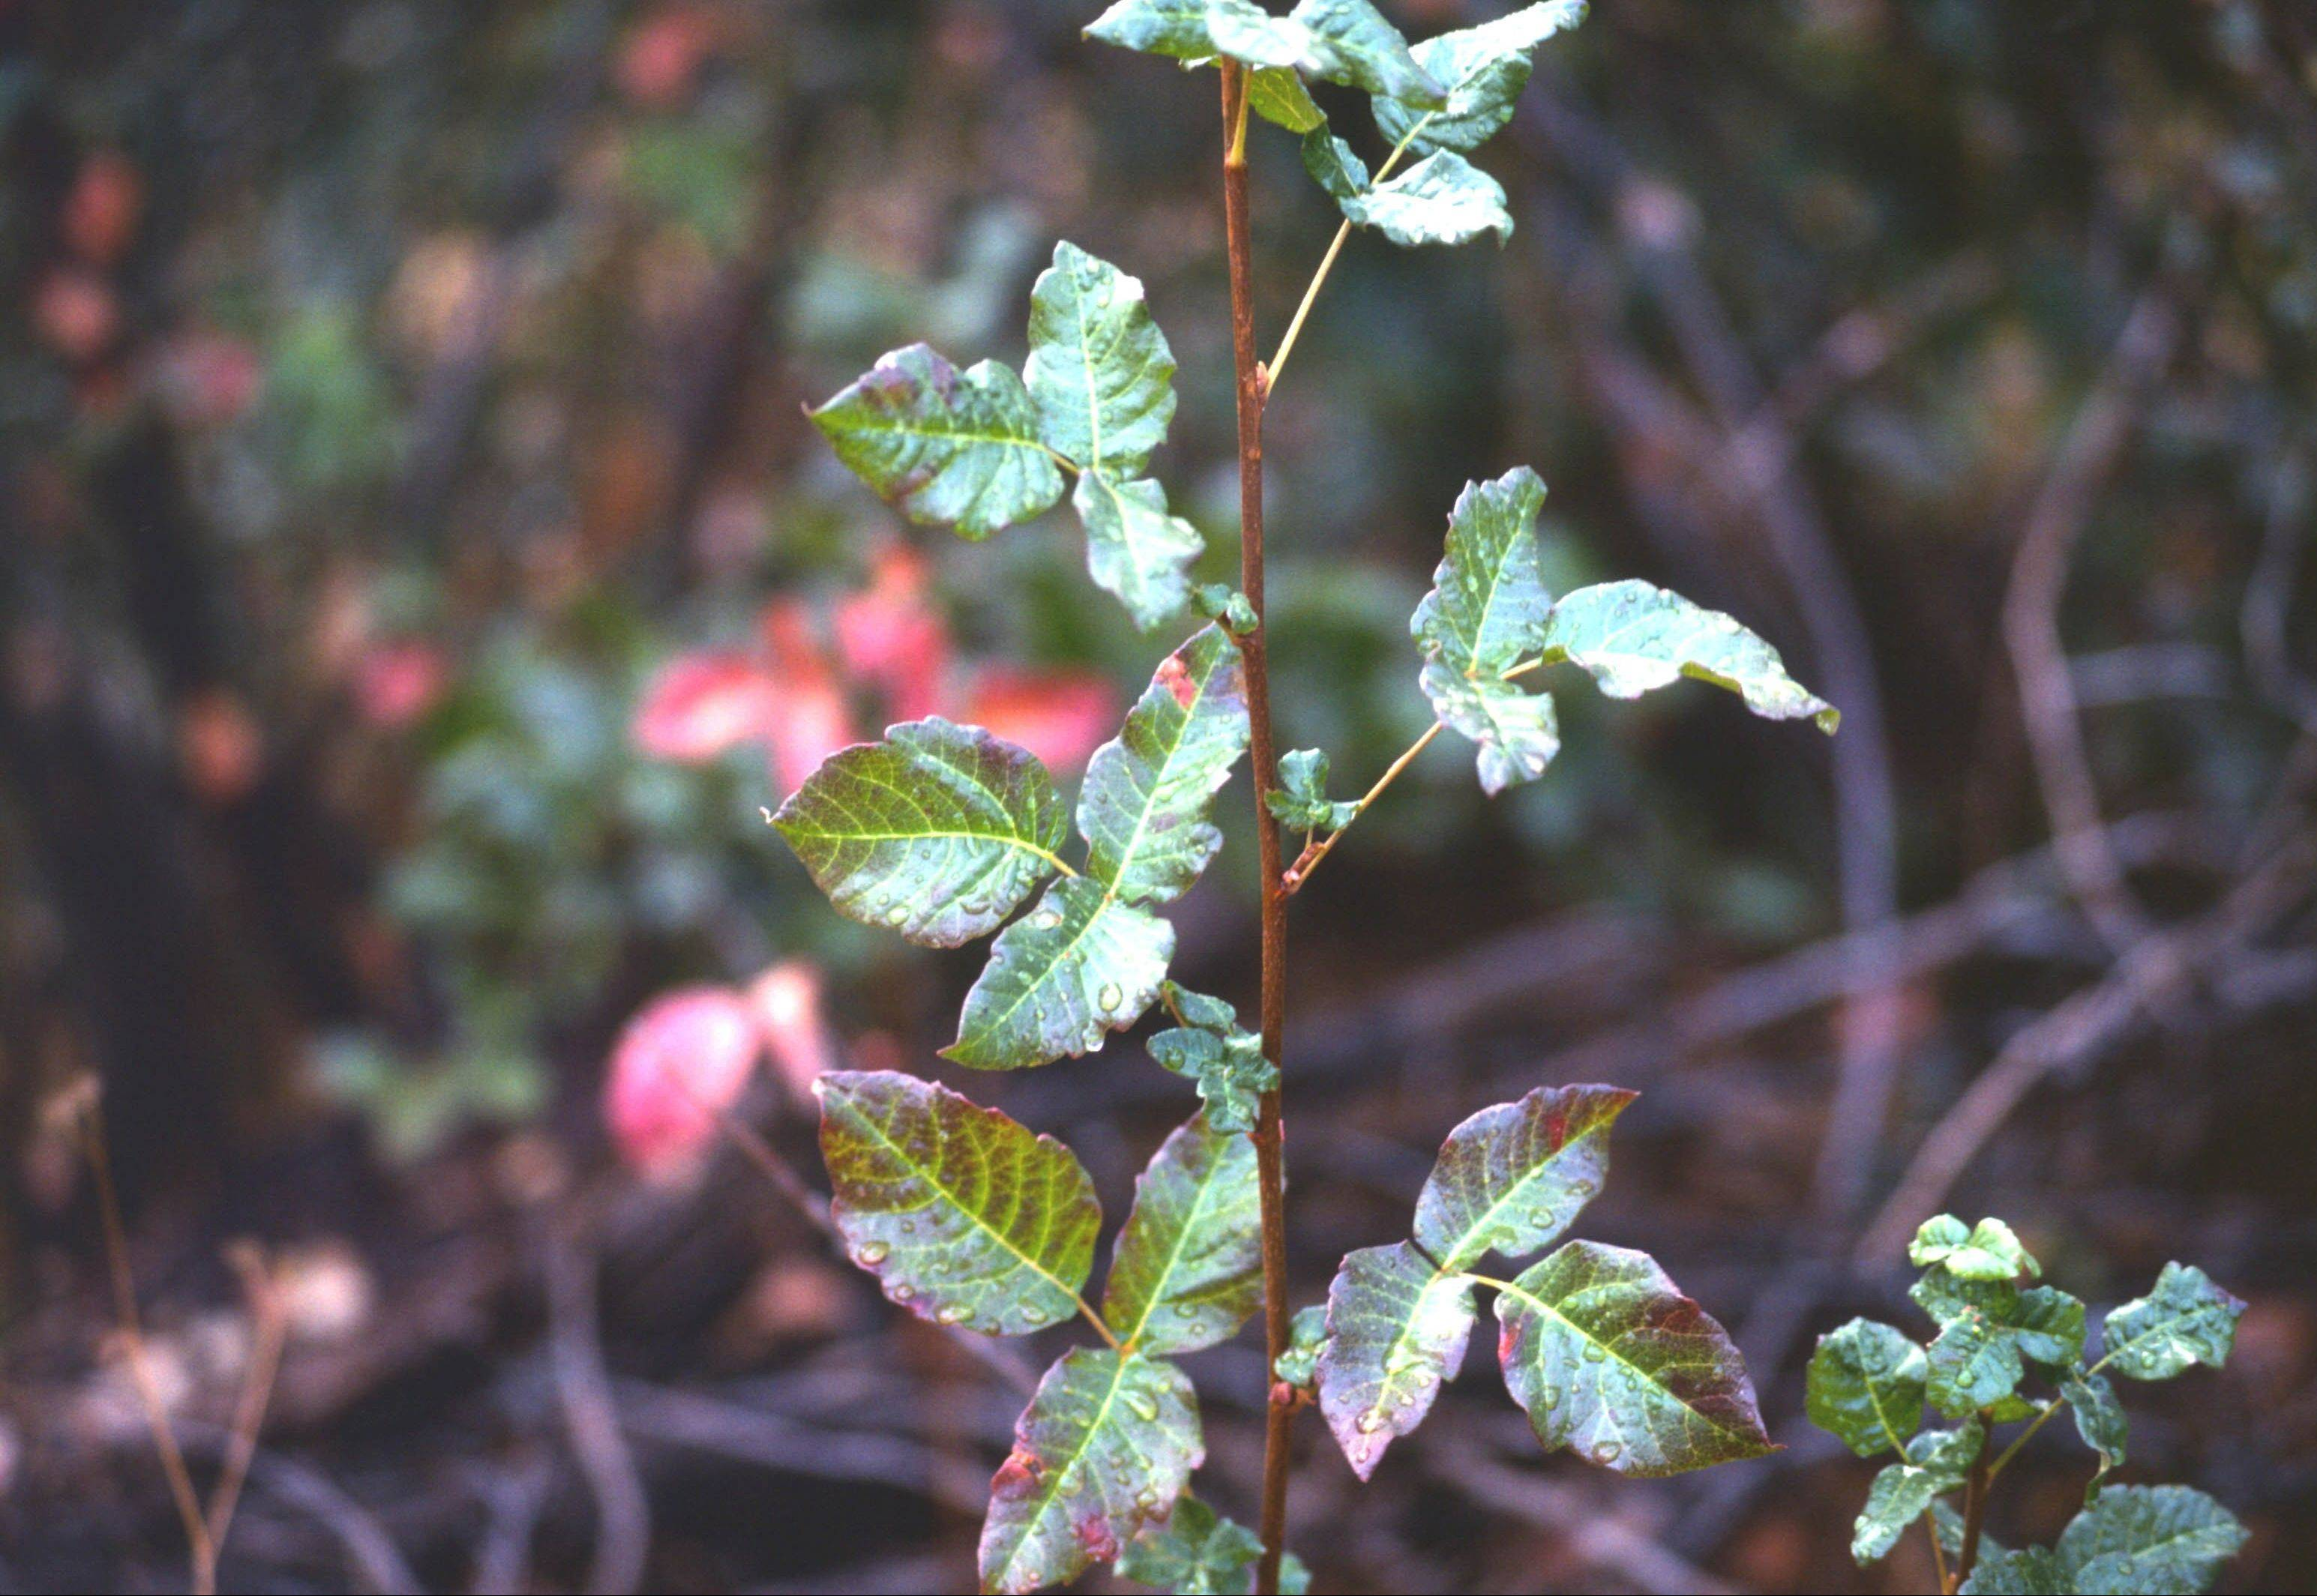 Be careful when coming in contact with poison oak